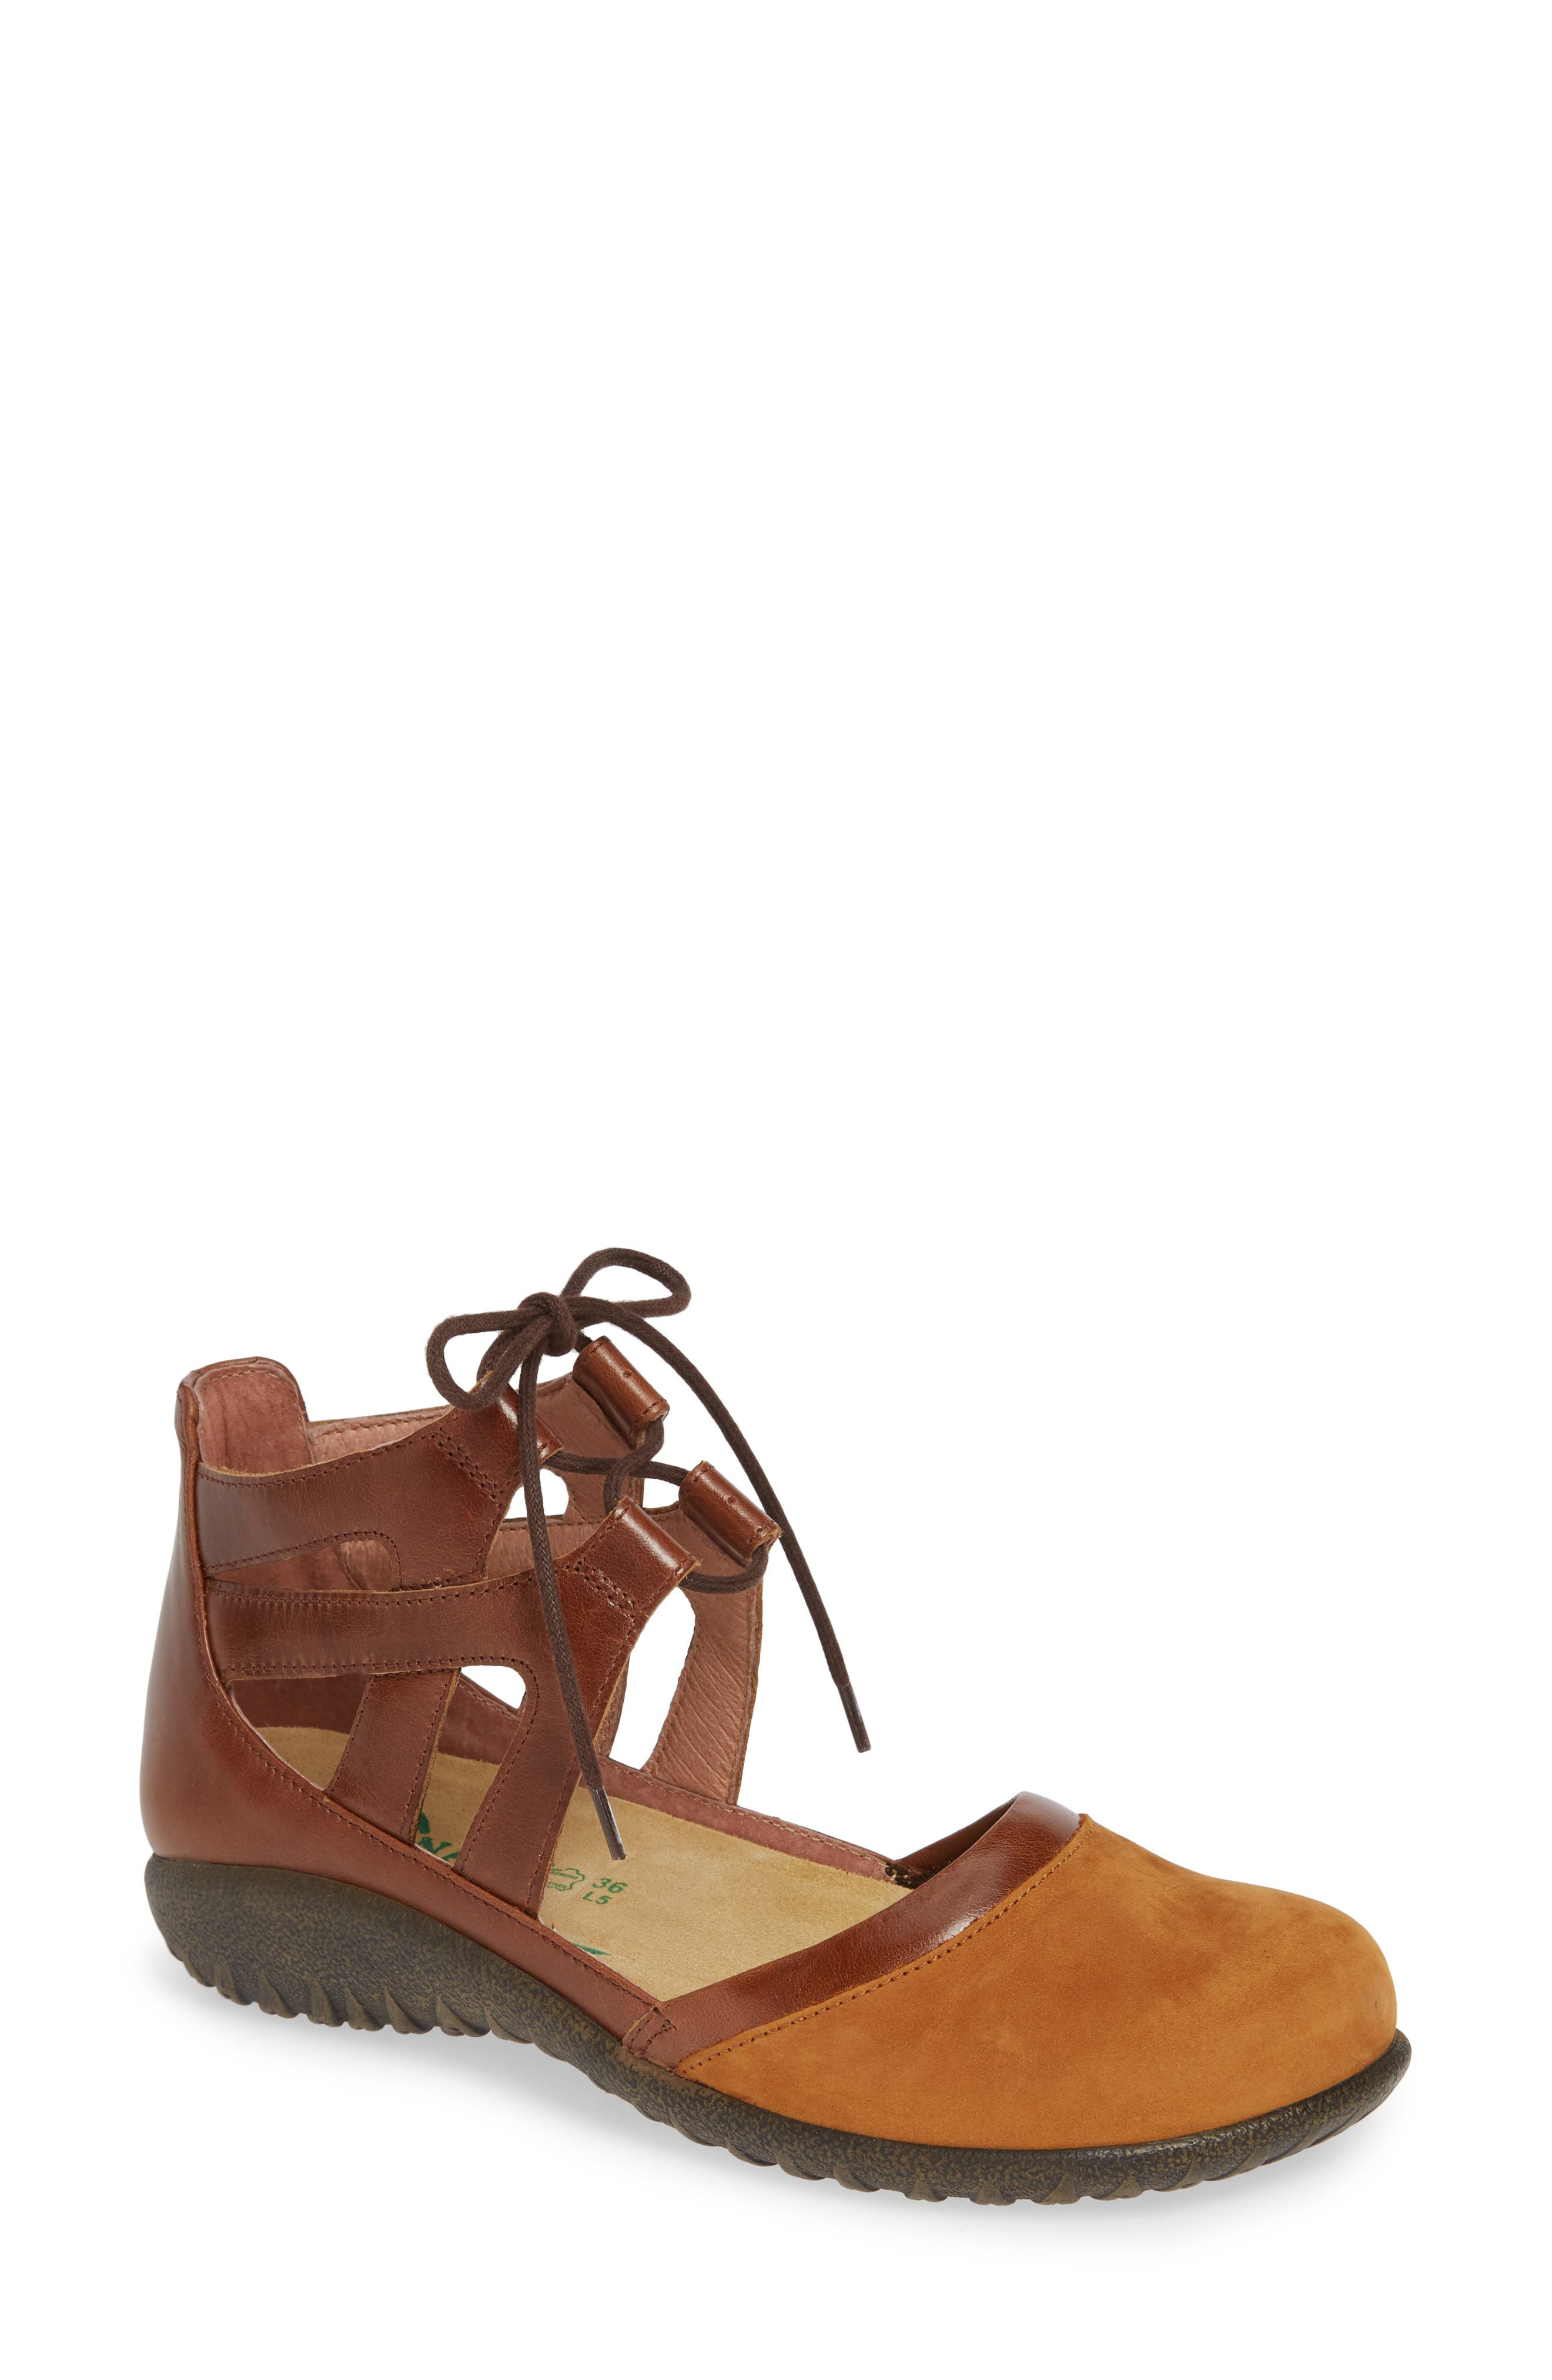 Kata Lace-Up Sandal,                         Main,                         color, Amber/ Maple Brown Nubuck